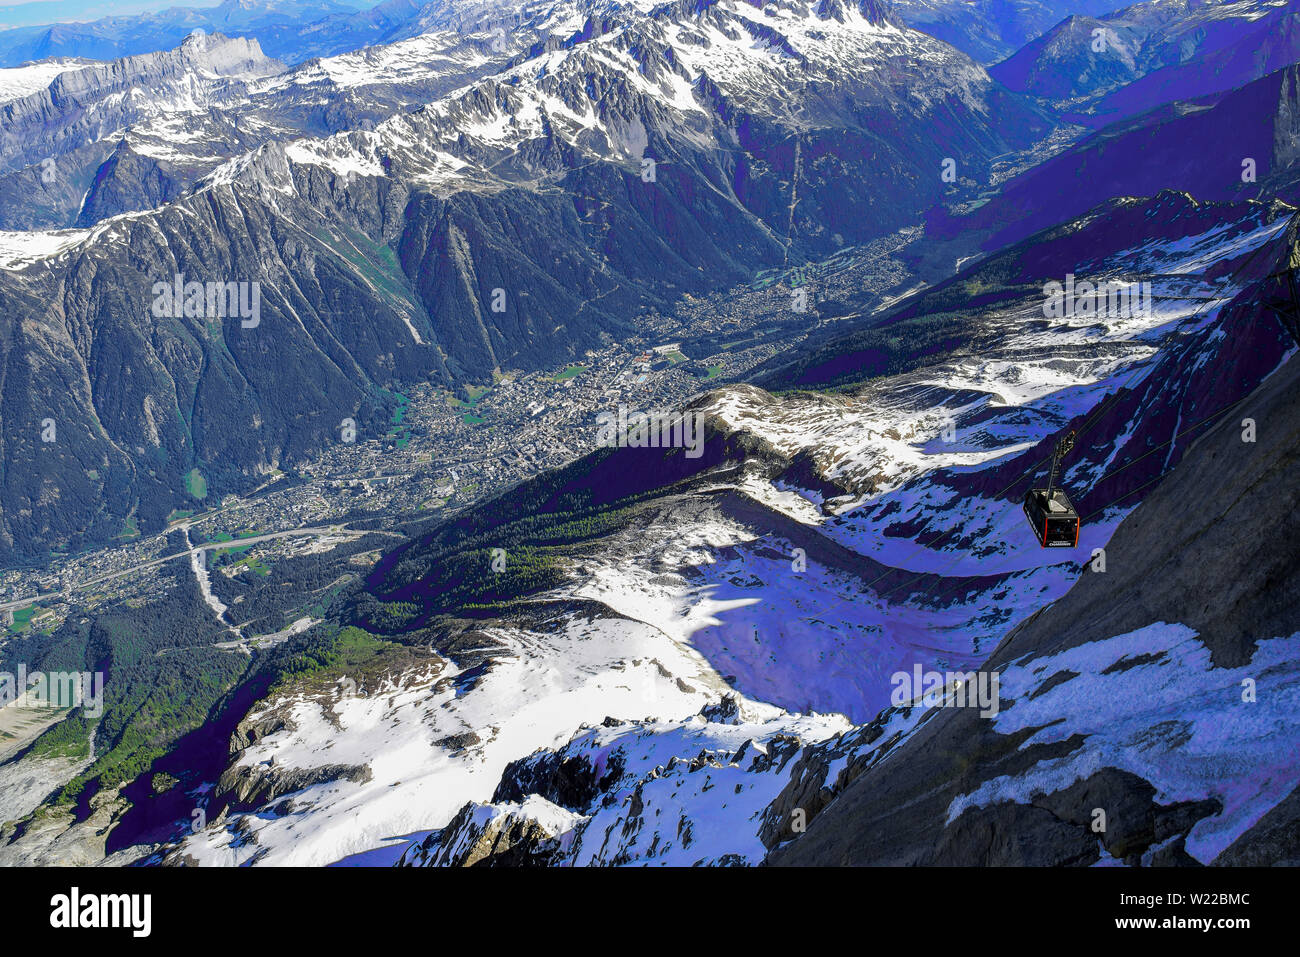 View from Aiguille Du Midi cable car station over Chamonix valley, French Alps above Chamonix. France. - Stock Image